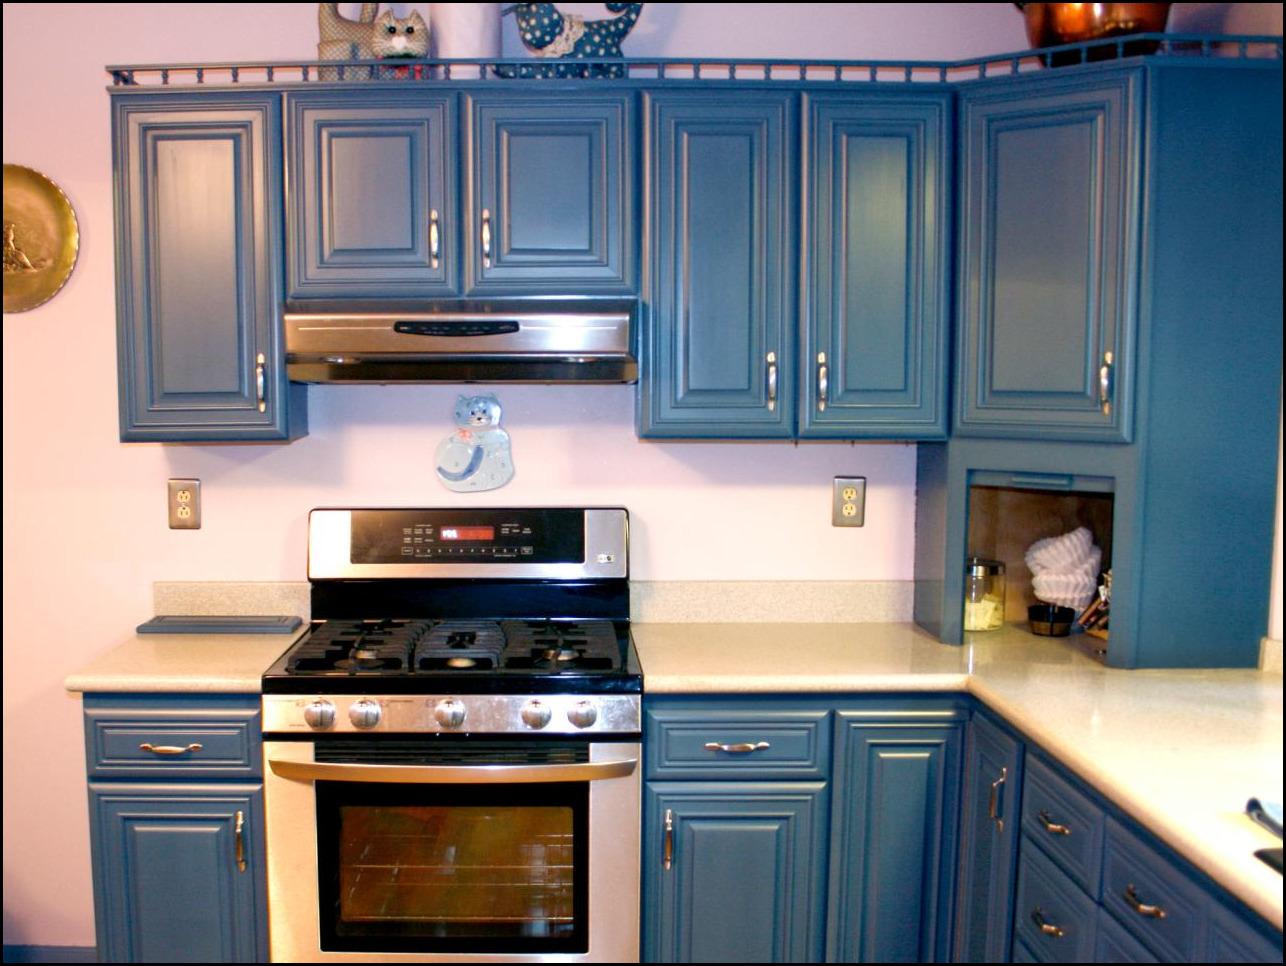 9 Ideas For Remodeling Old Kitchen Cabinets |